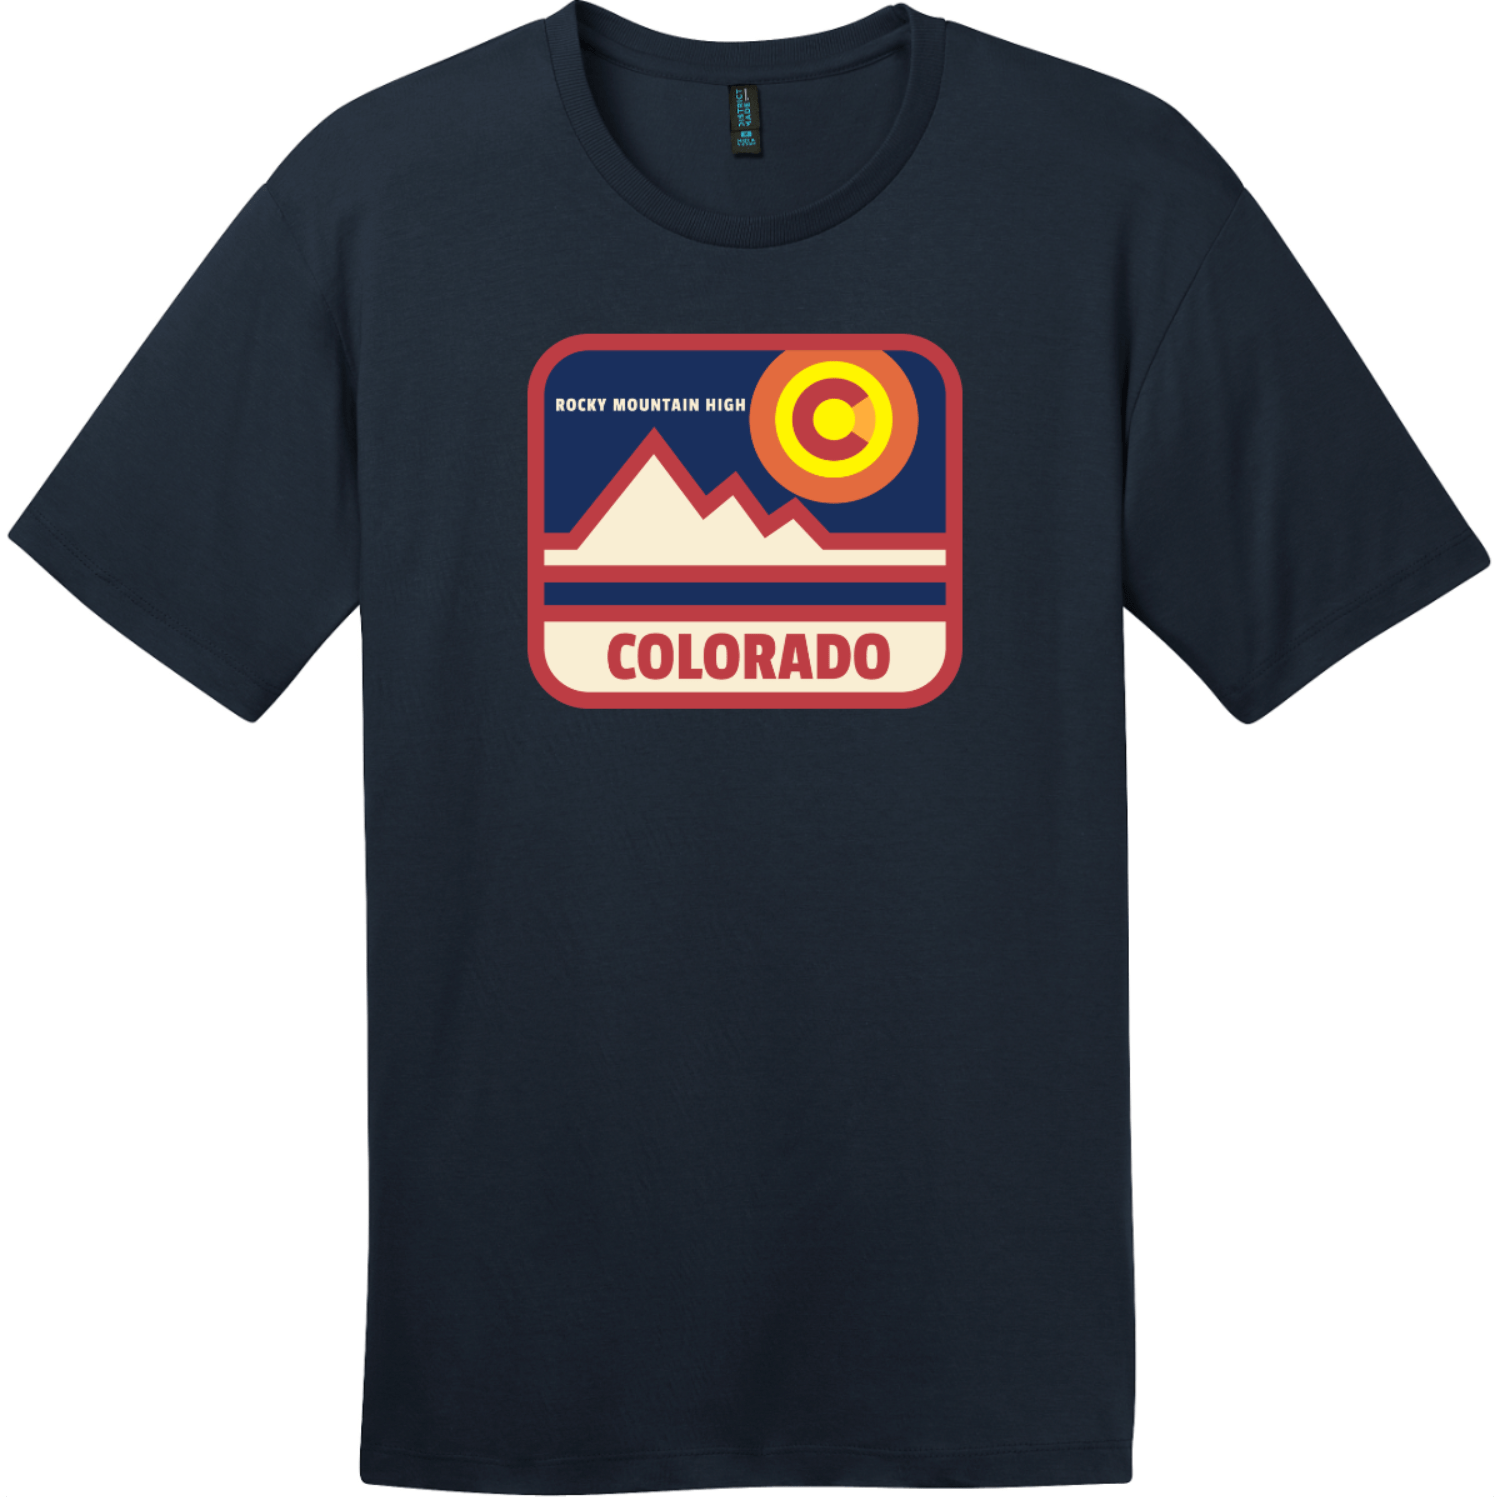 Colorado Rocky Mountain High T-Shirt New Navy District Perfect Weight Tee DT104